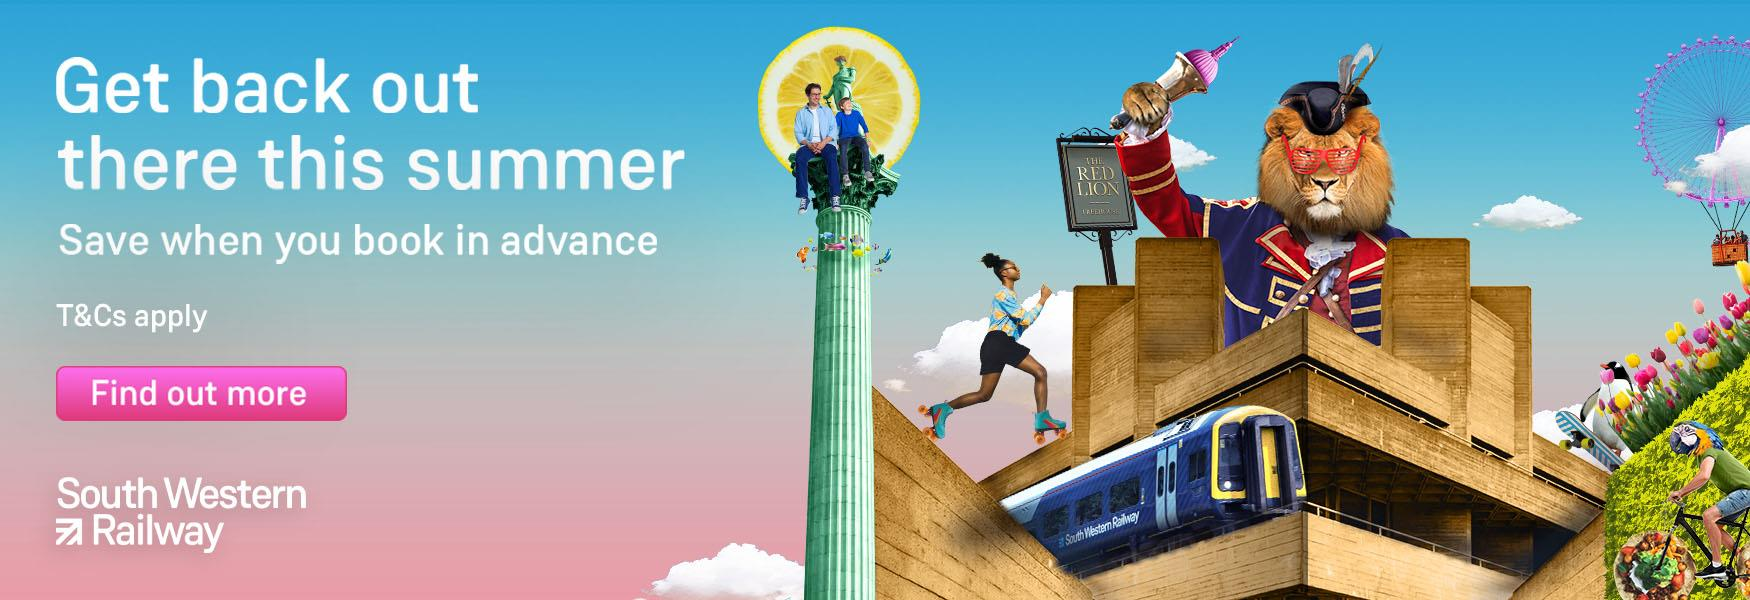 South West Trains: get back out there this summer; save when you book in advance